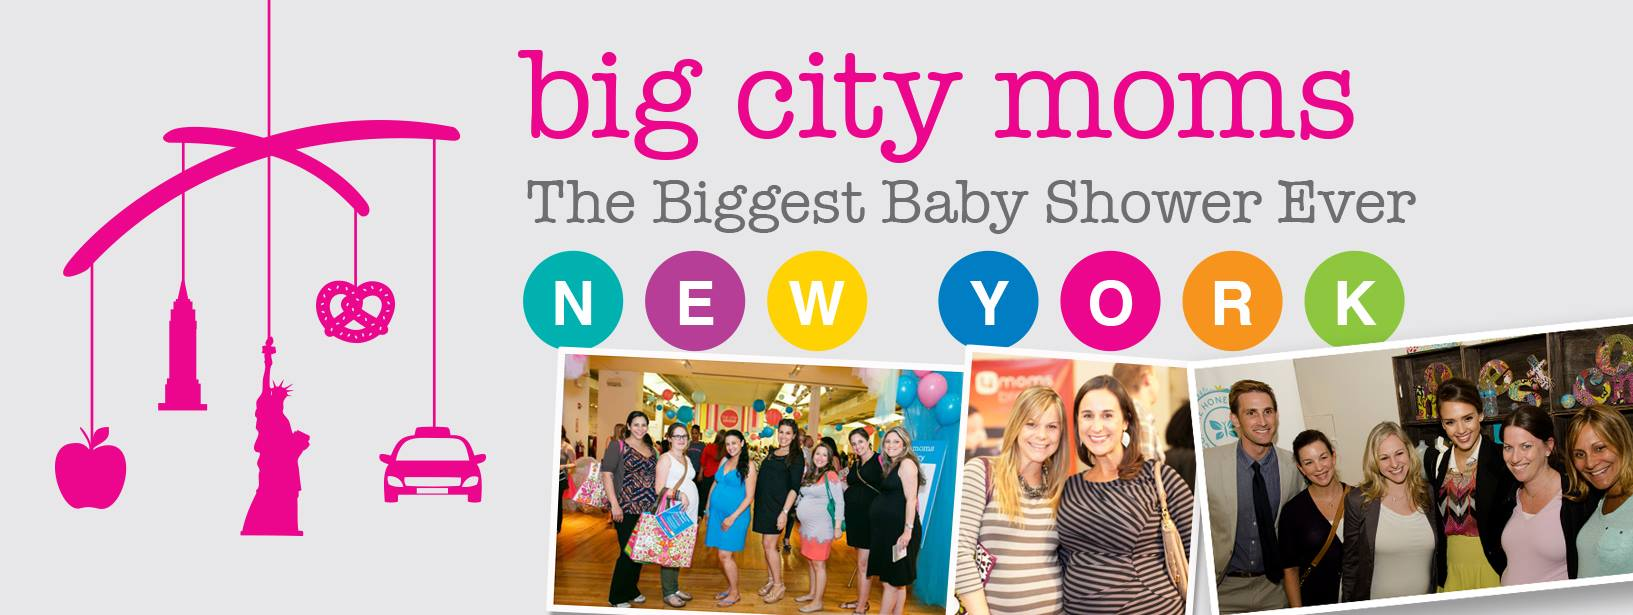 big city moms biggest baby shower nyc spring 2015 upout